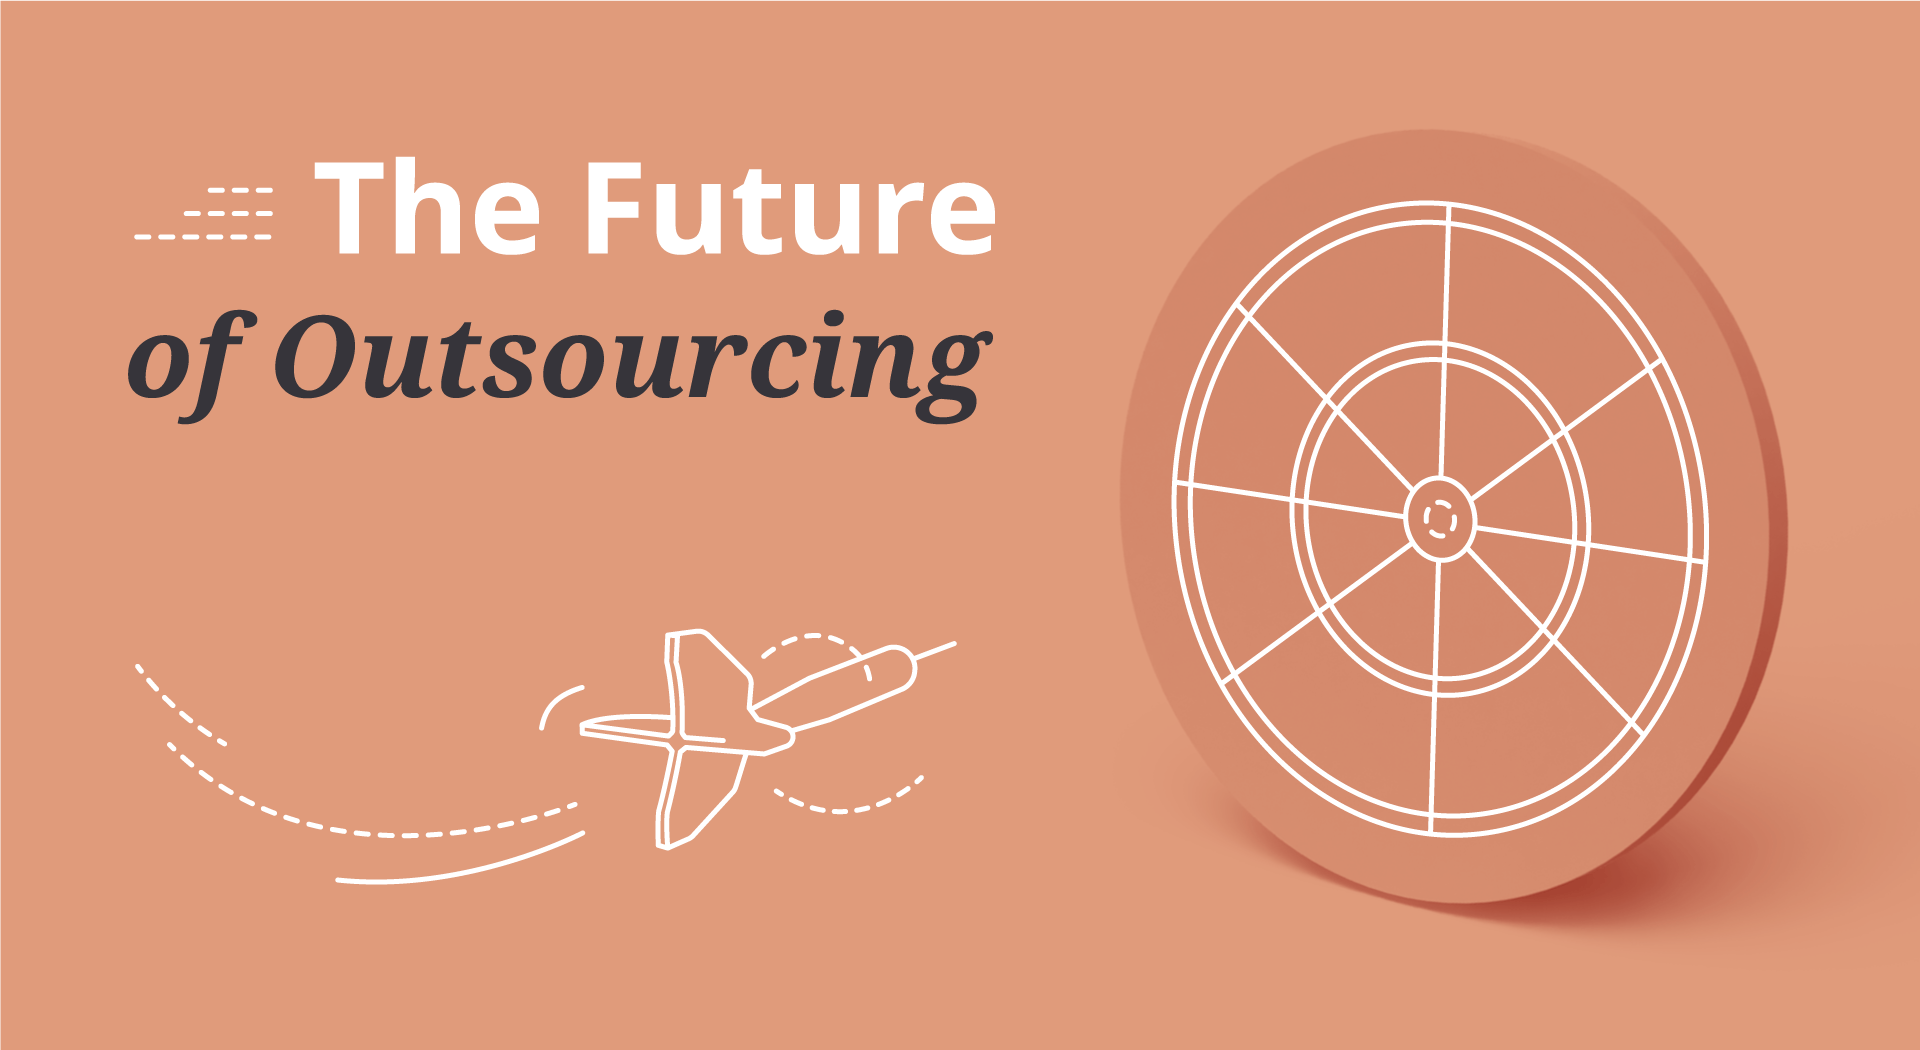 The Future of Outsourcing: Why Offshore Development Is Critical for the Tech Industry